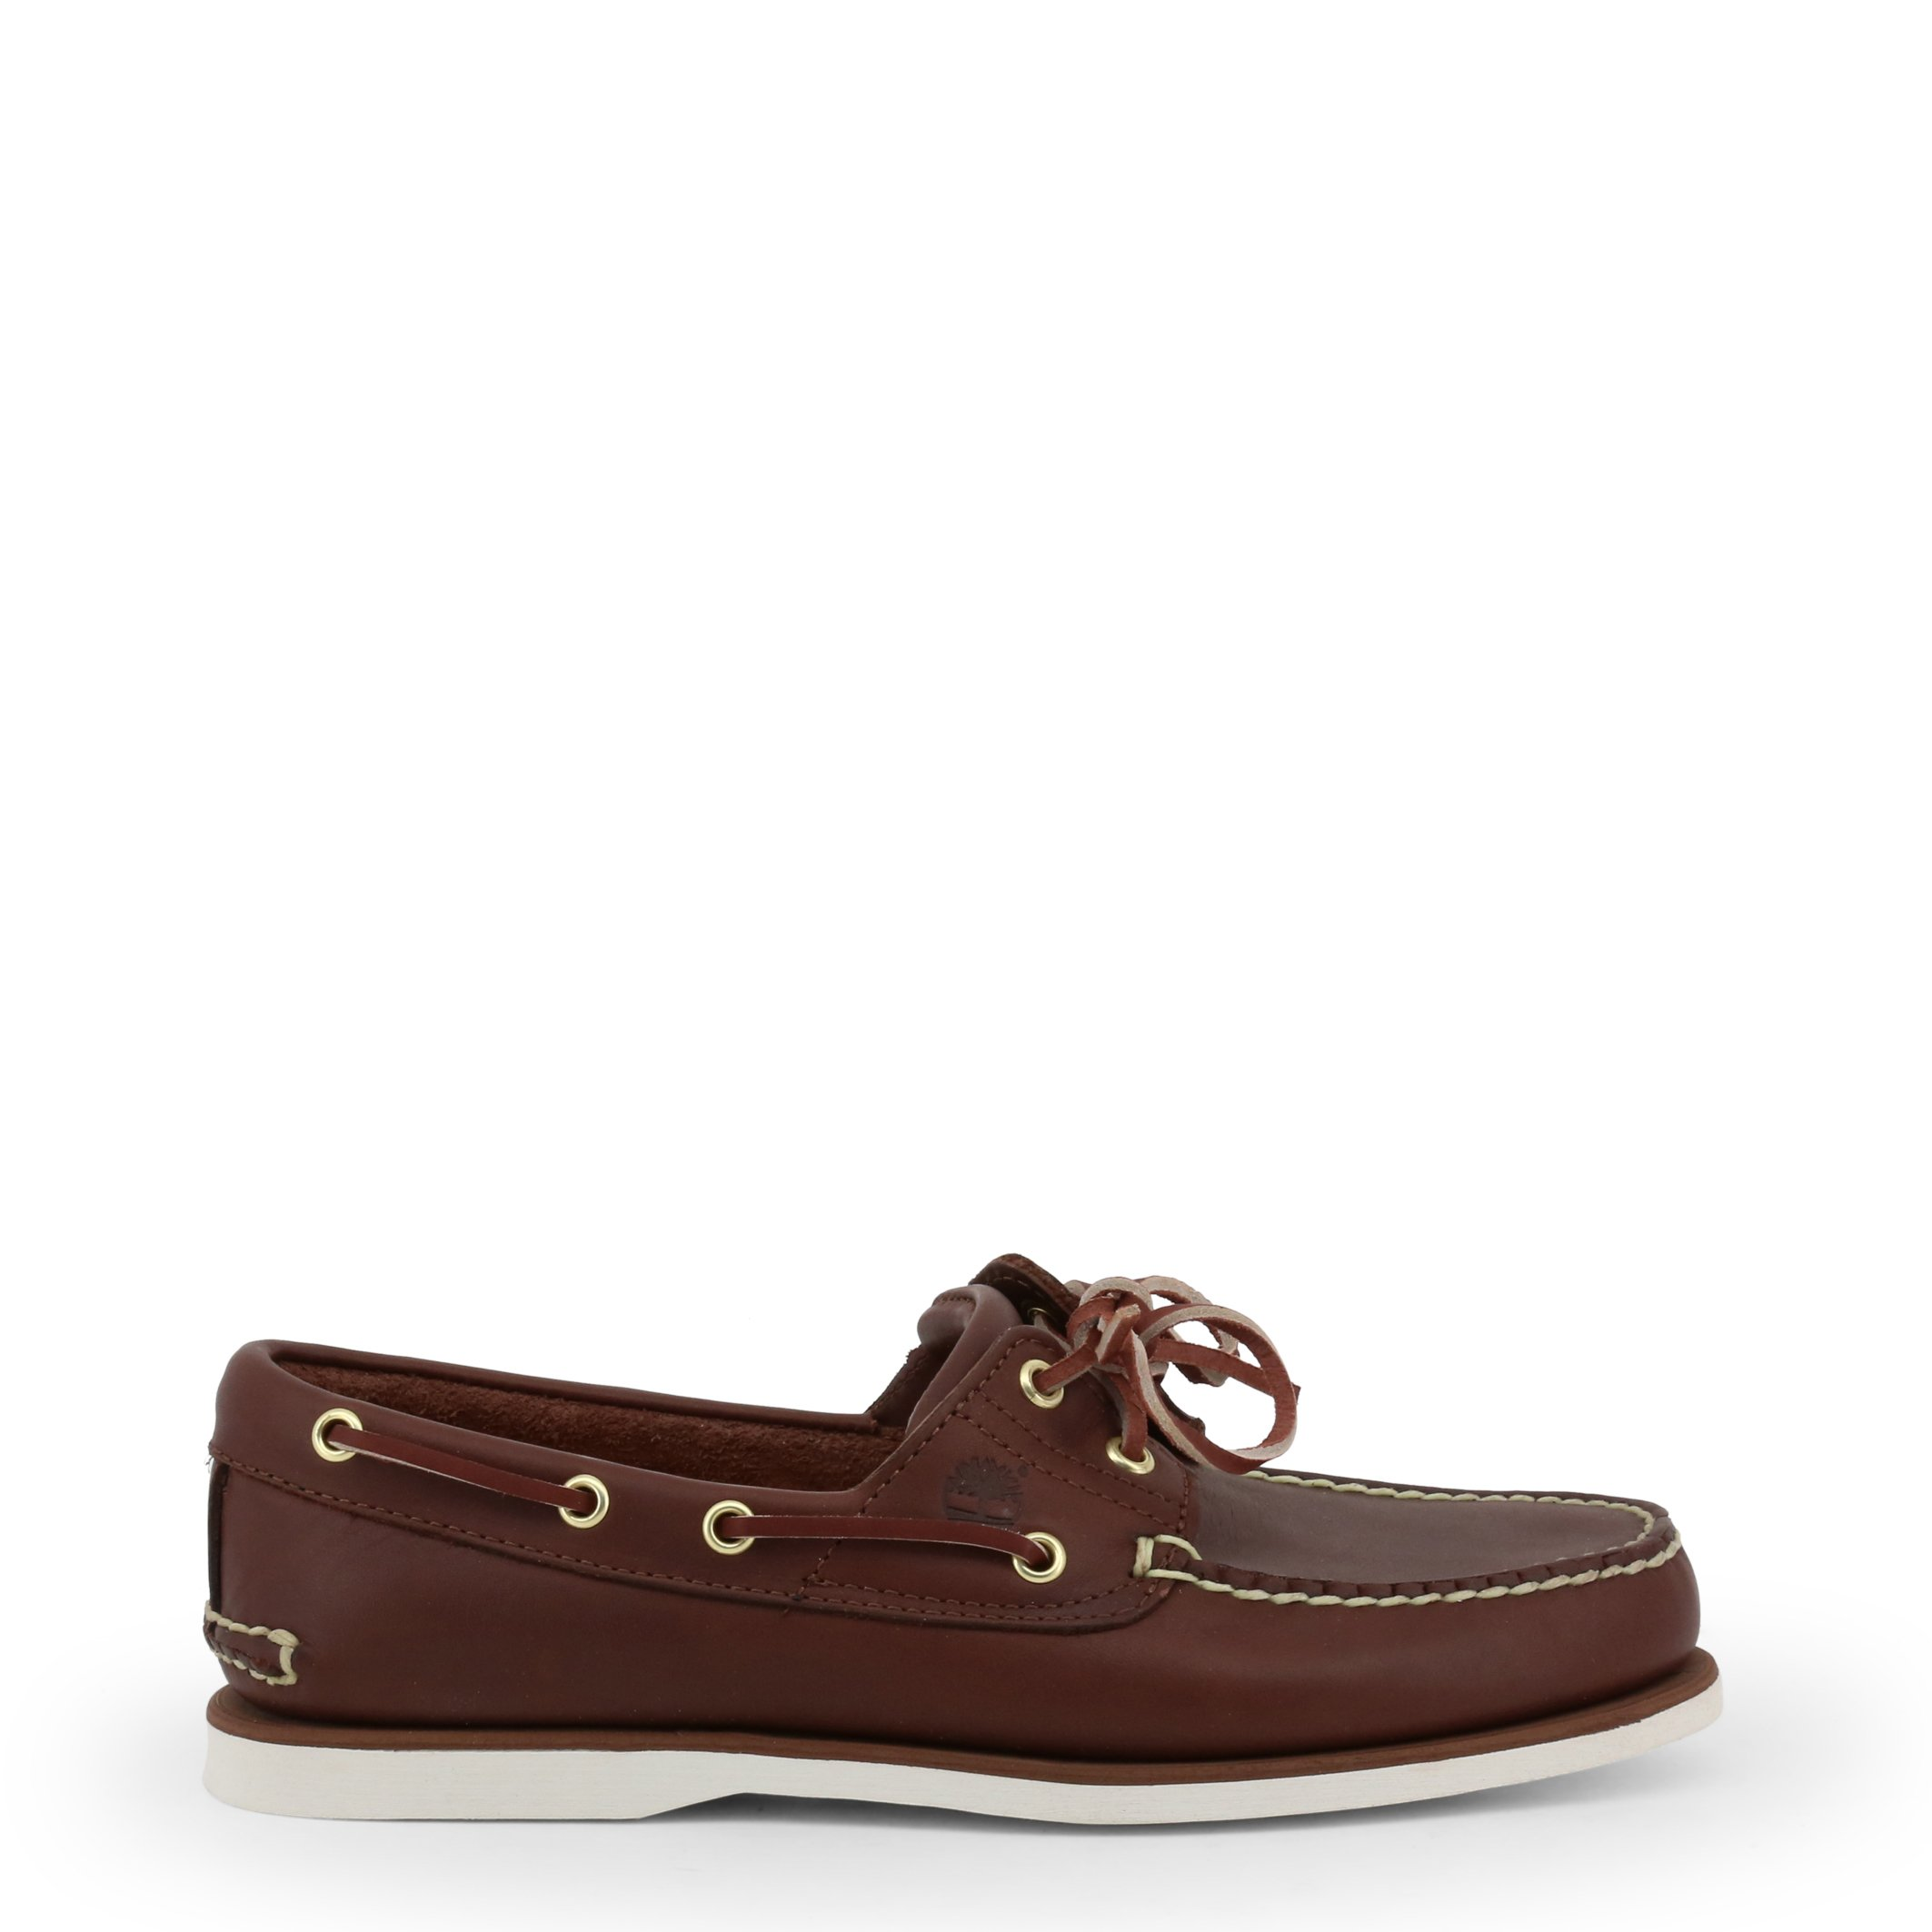 Timberland Men's Loafers Various Colours CLASSICBOAT - brown EU 41